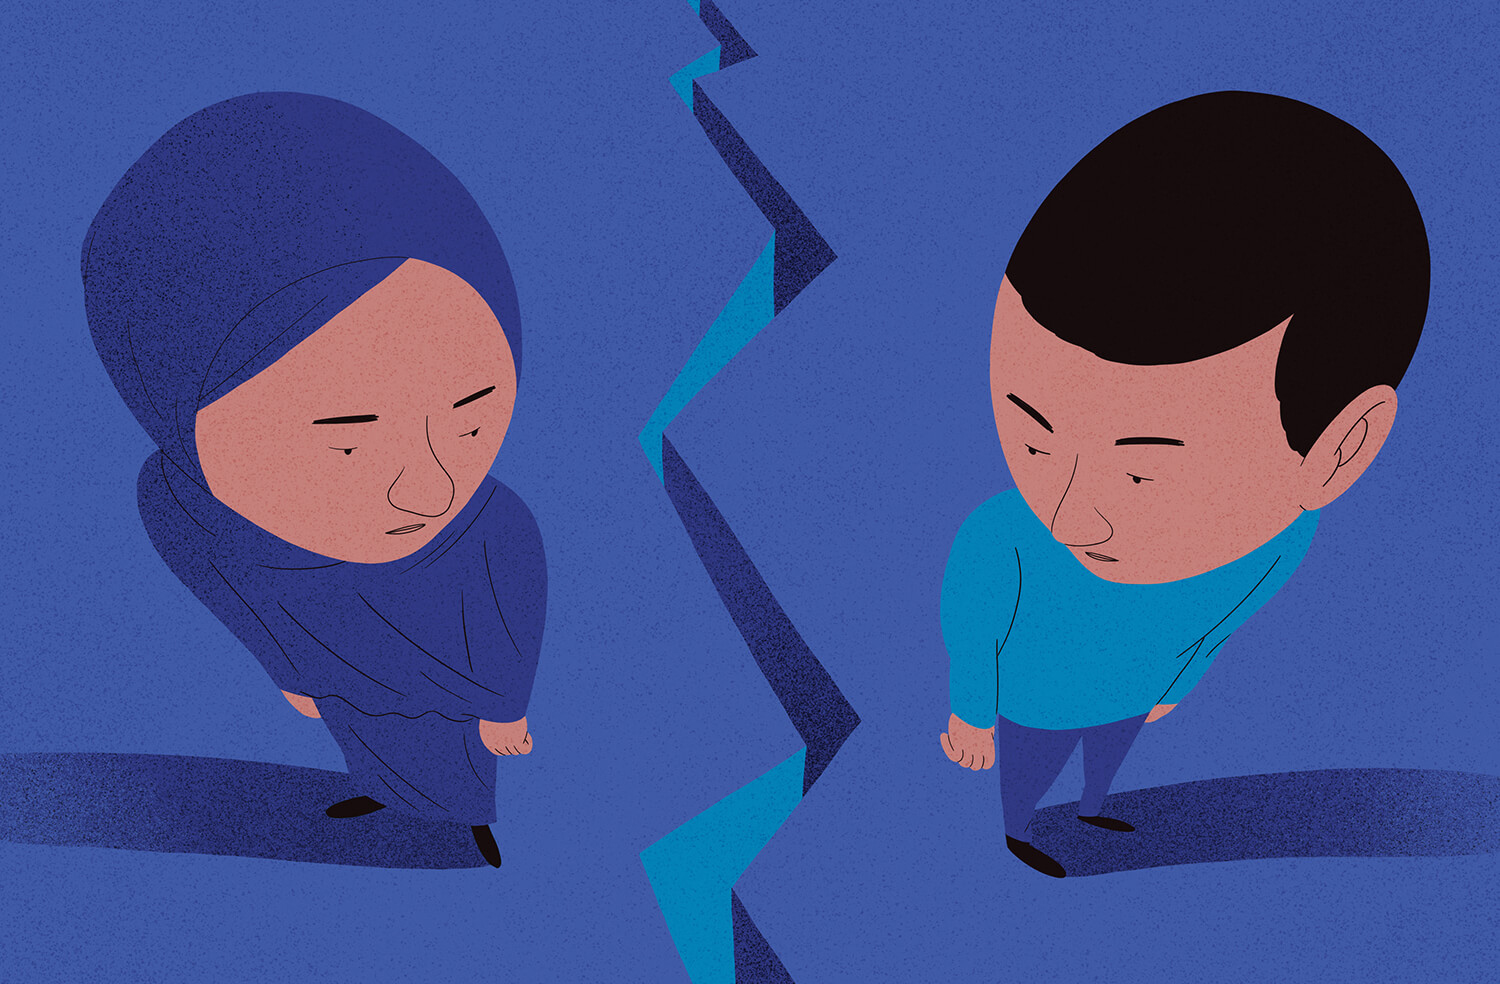 Too Many Rights? Afghan Men's Views on Women